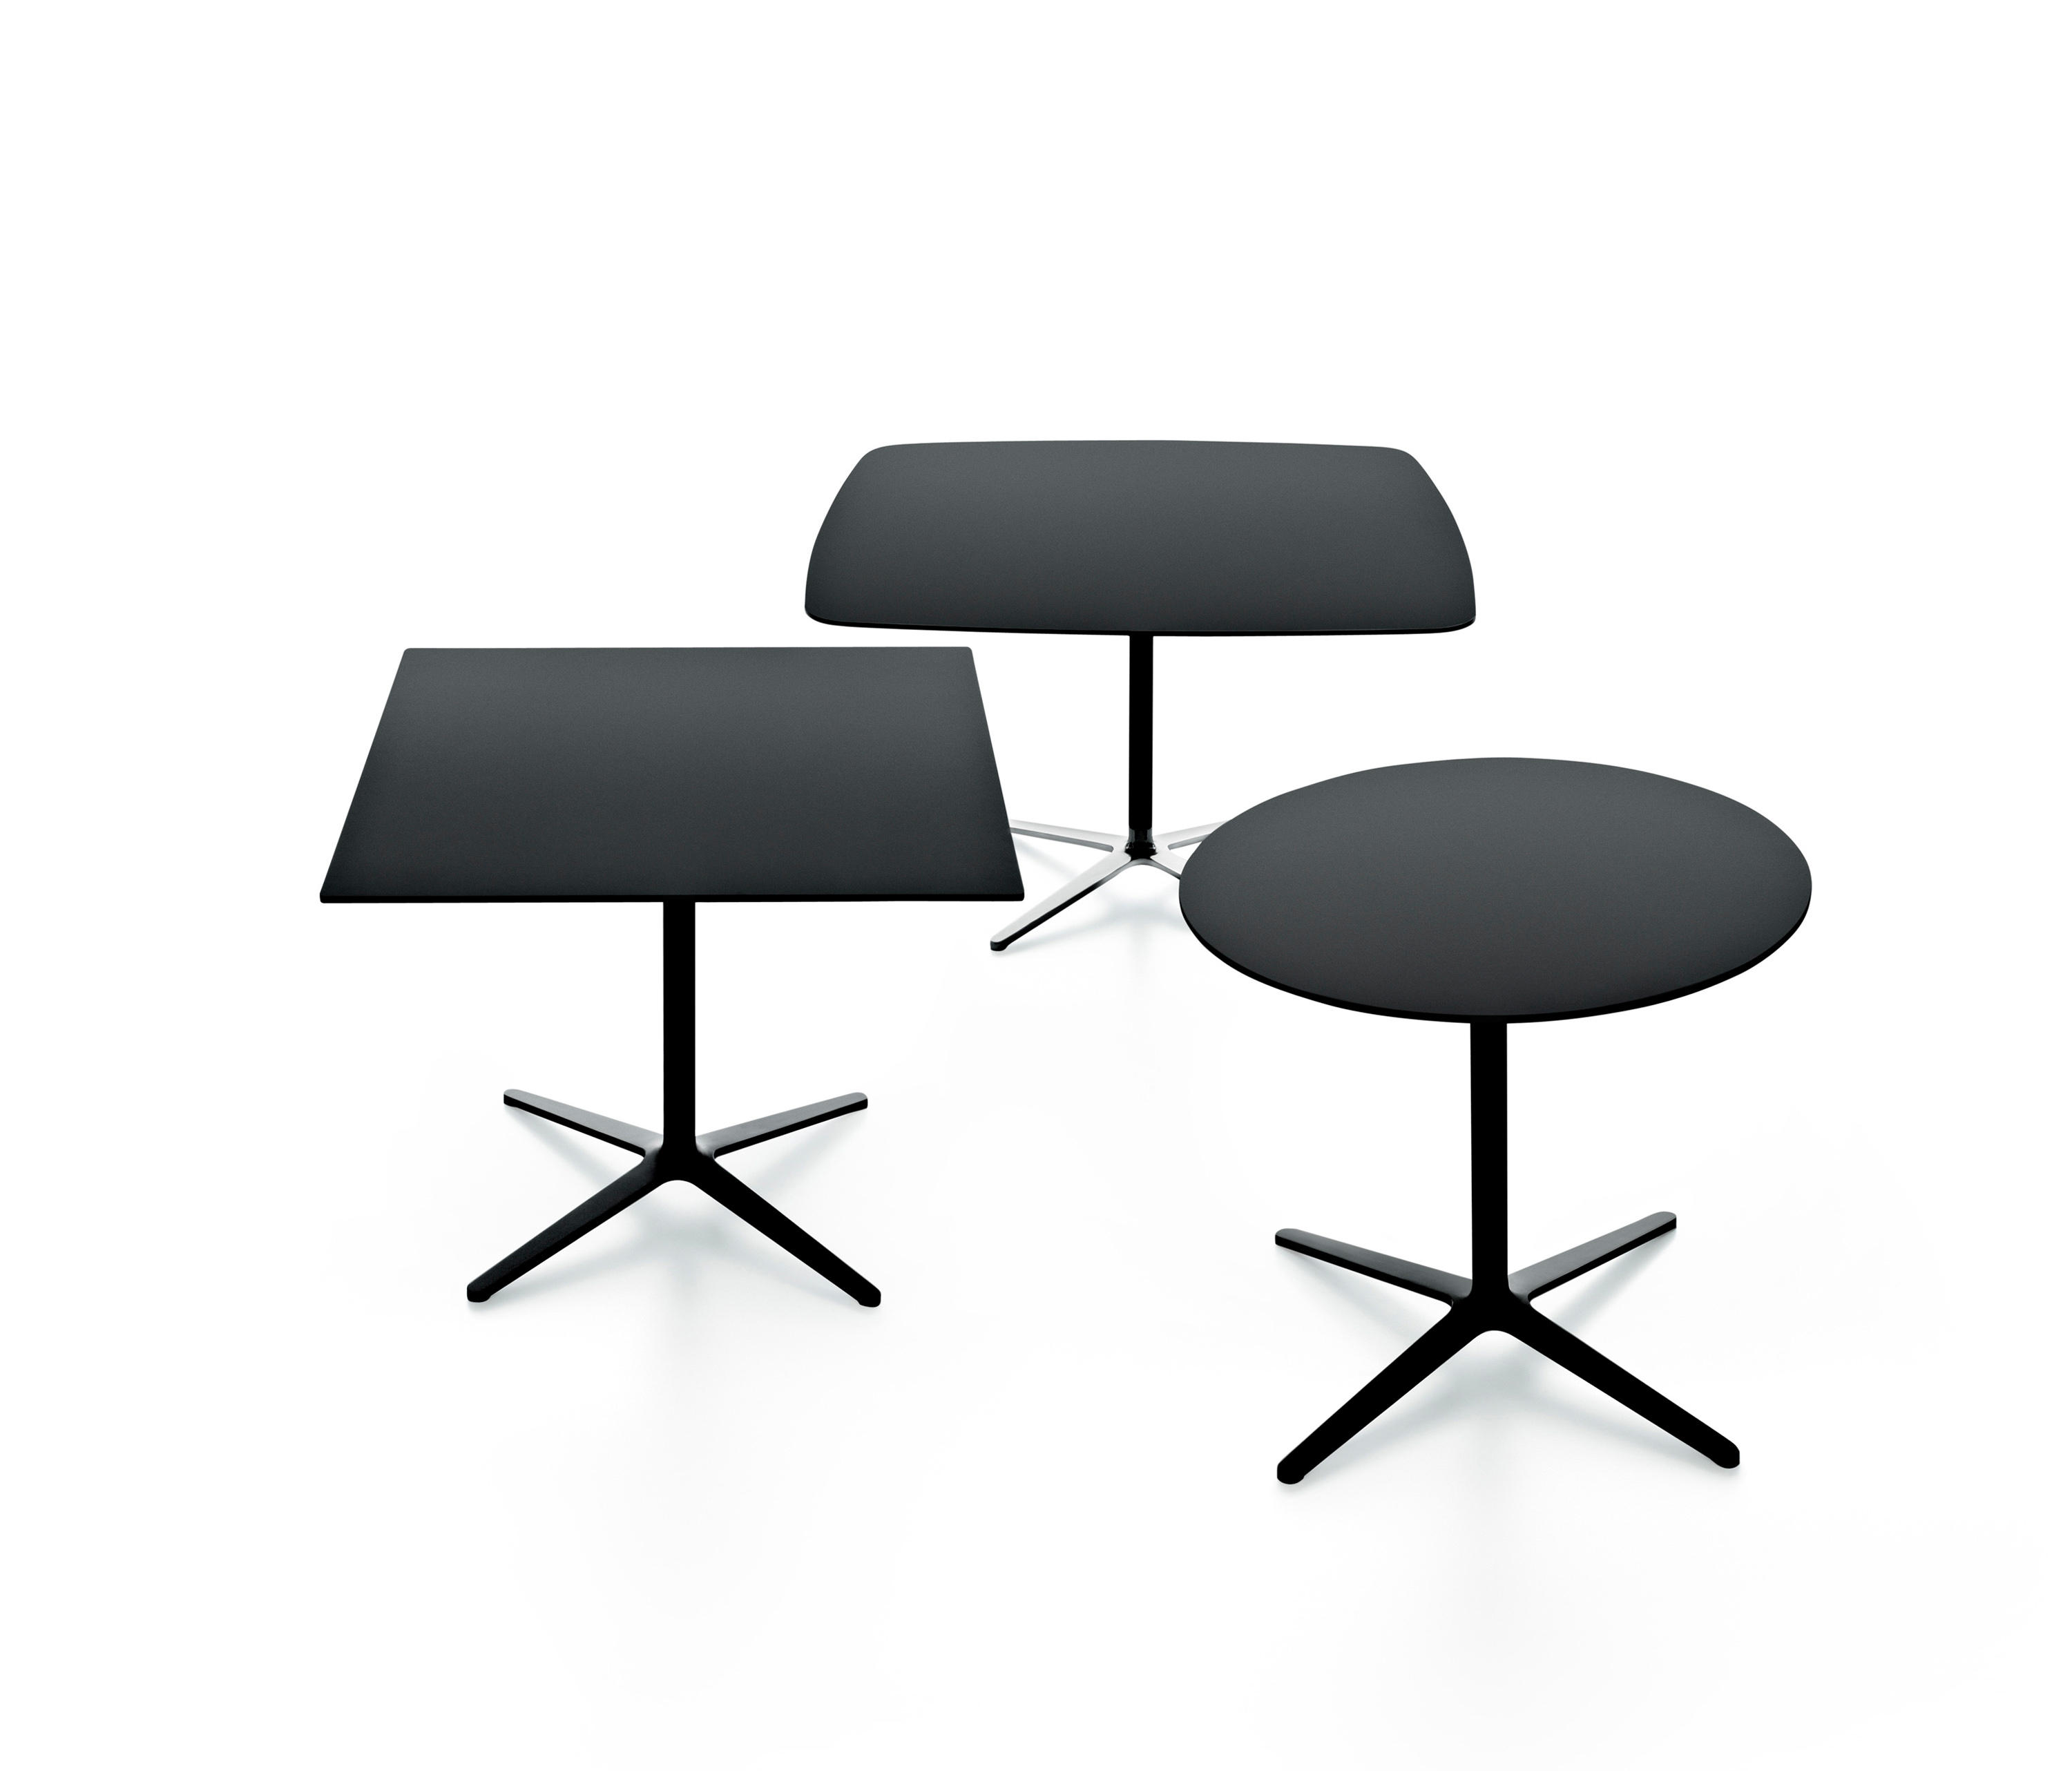 plato dining tables from maxdesign architonic